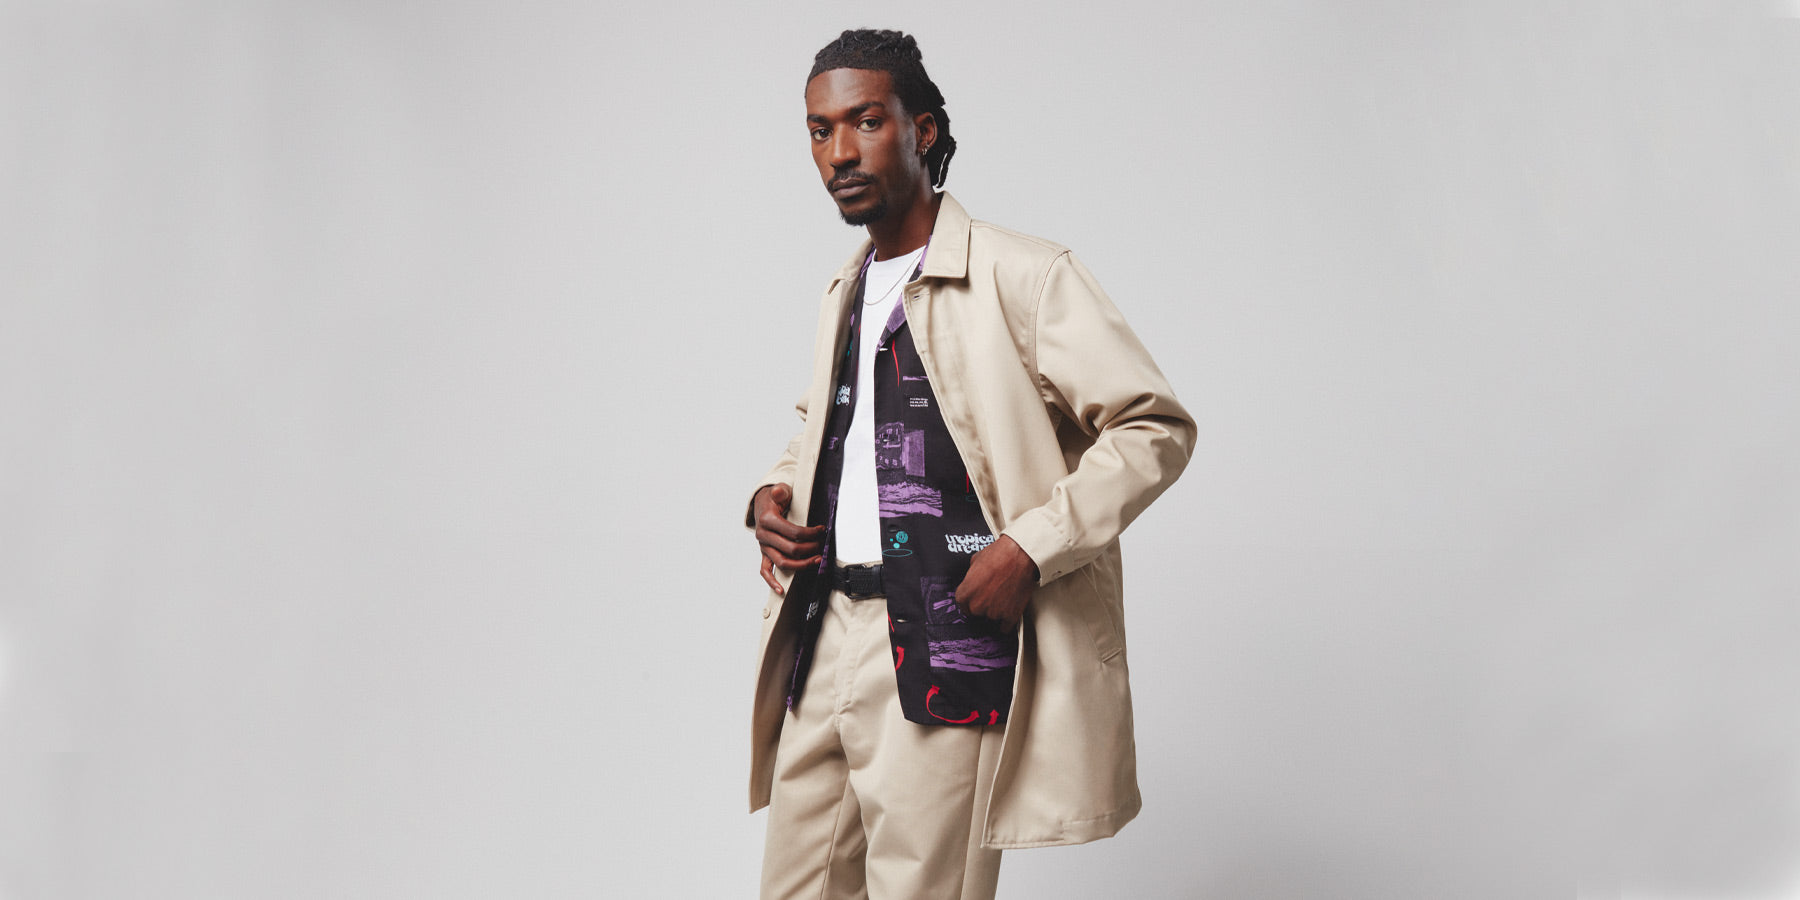 Carhartt WIP - Sehr Goods: Dein General Supply Store